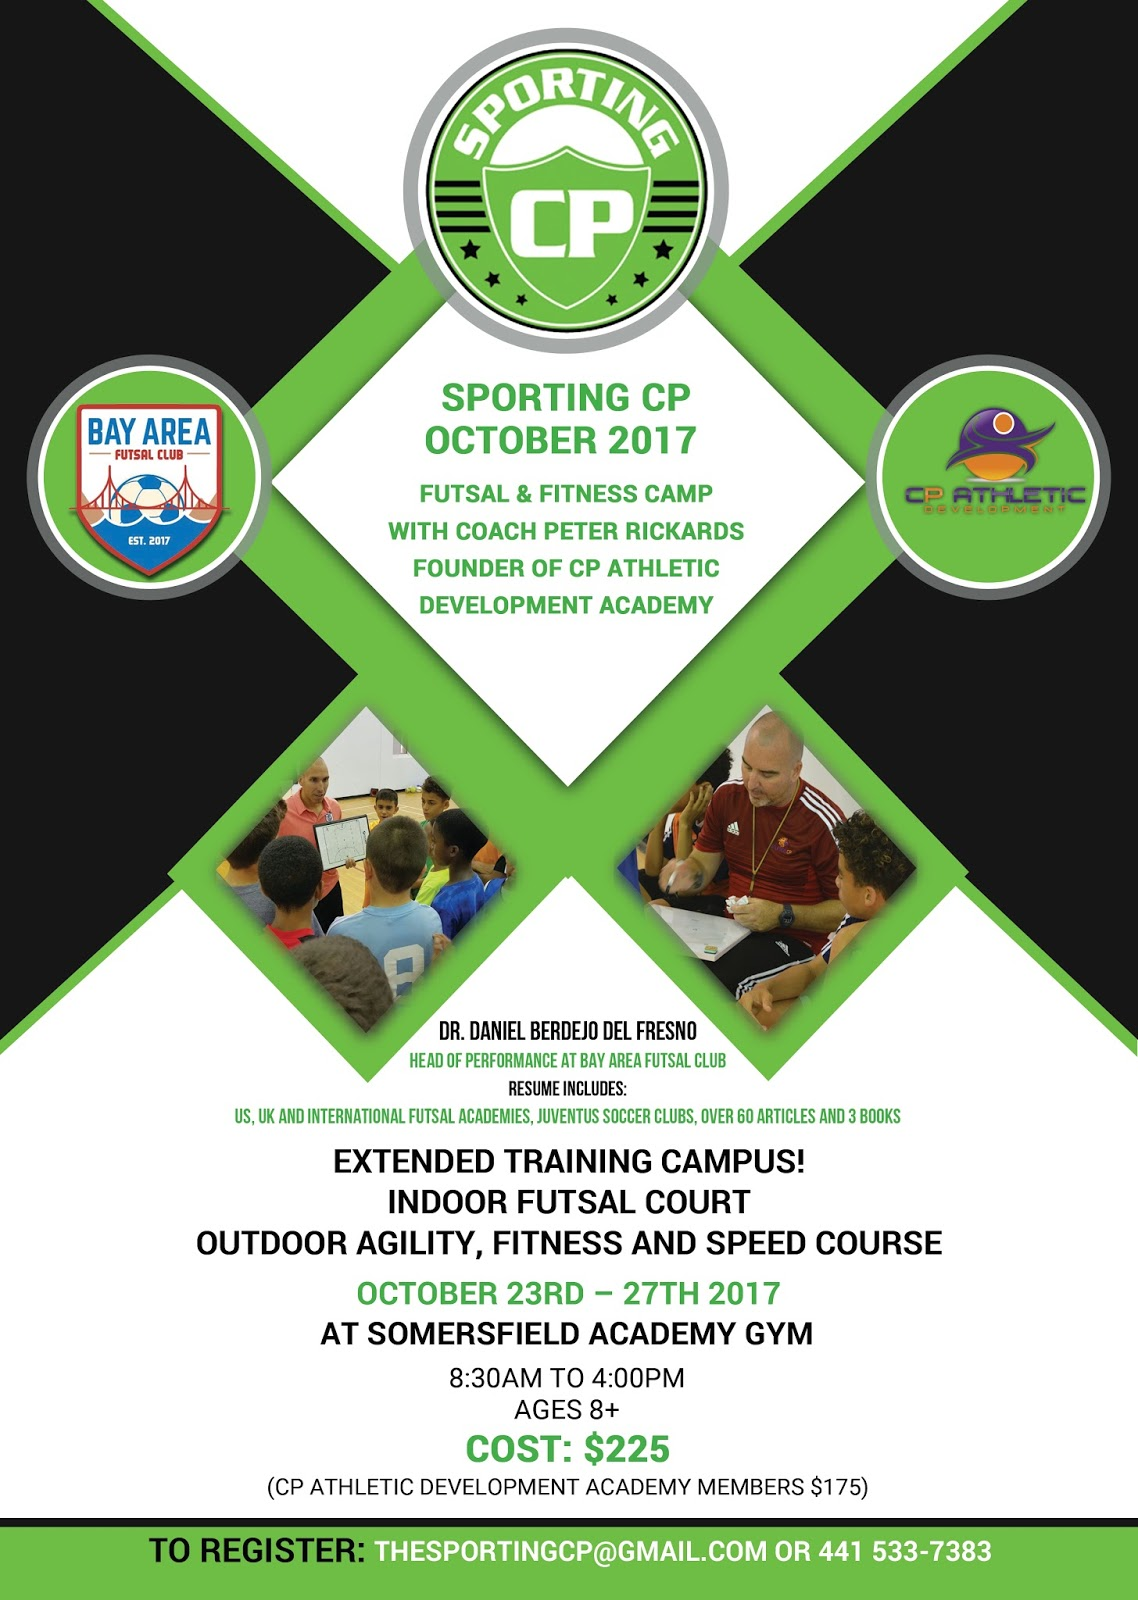 Simply sport futsal camp coaching certificates in bermuda level 1 level 2 coaching certifications saturday and sunday 28th and 29th october 6 hours of content each certification with theoretical and training xflitez Choice Image